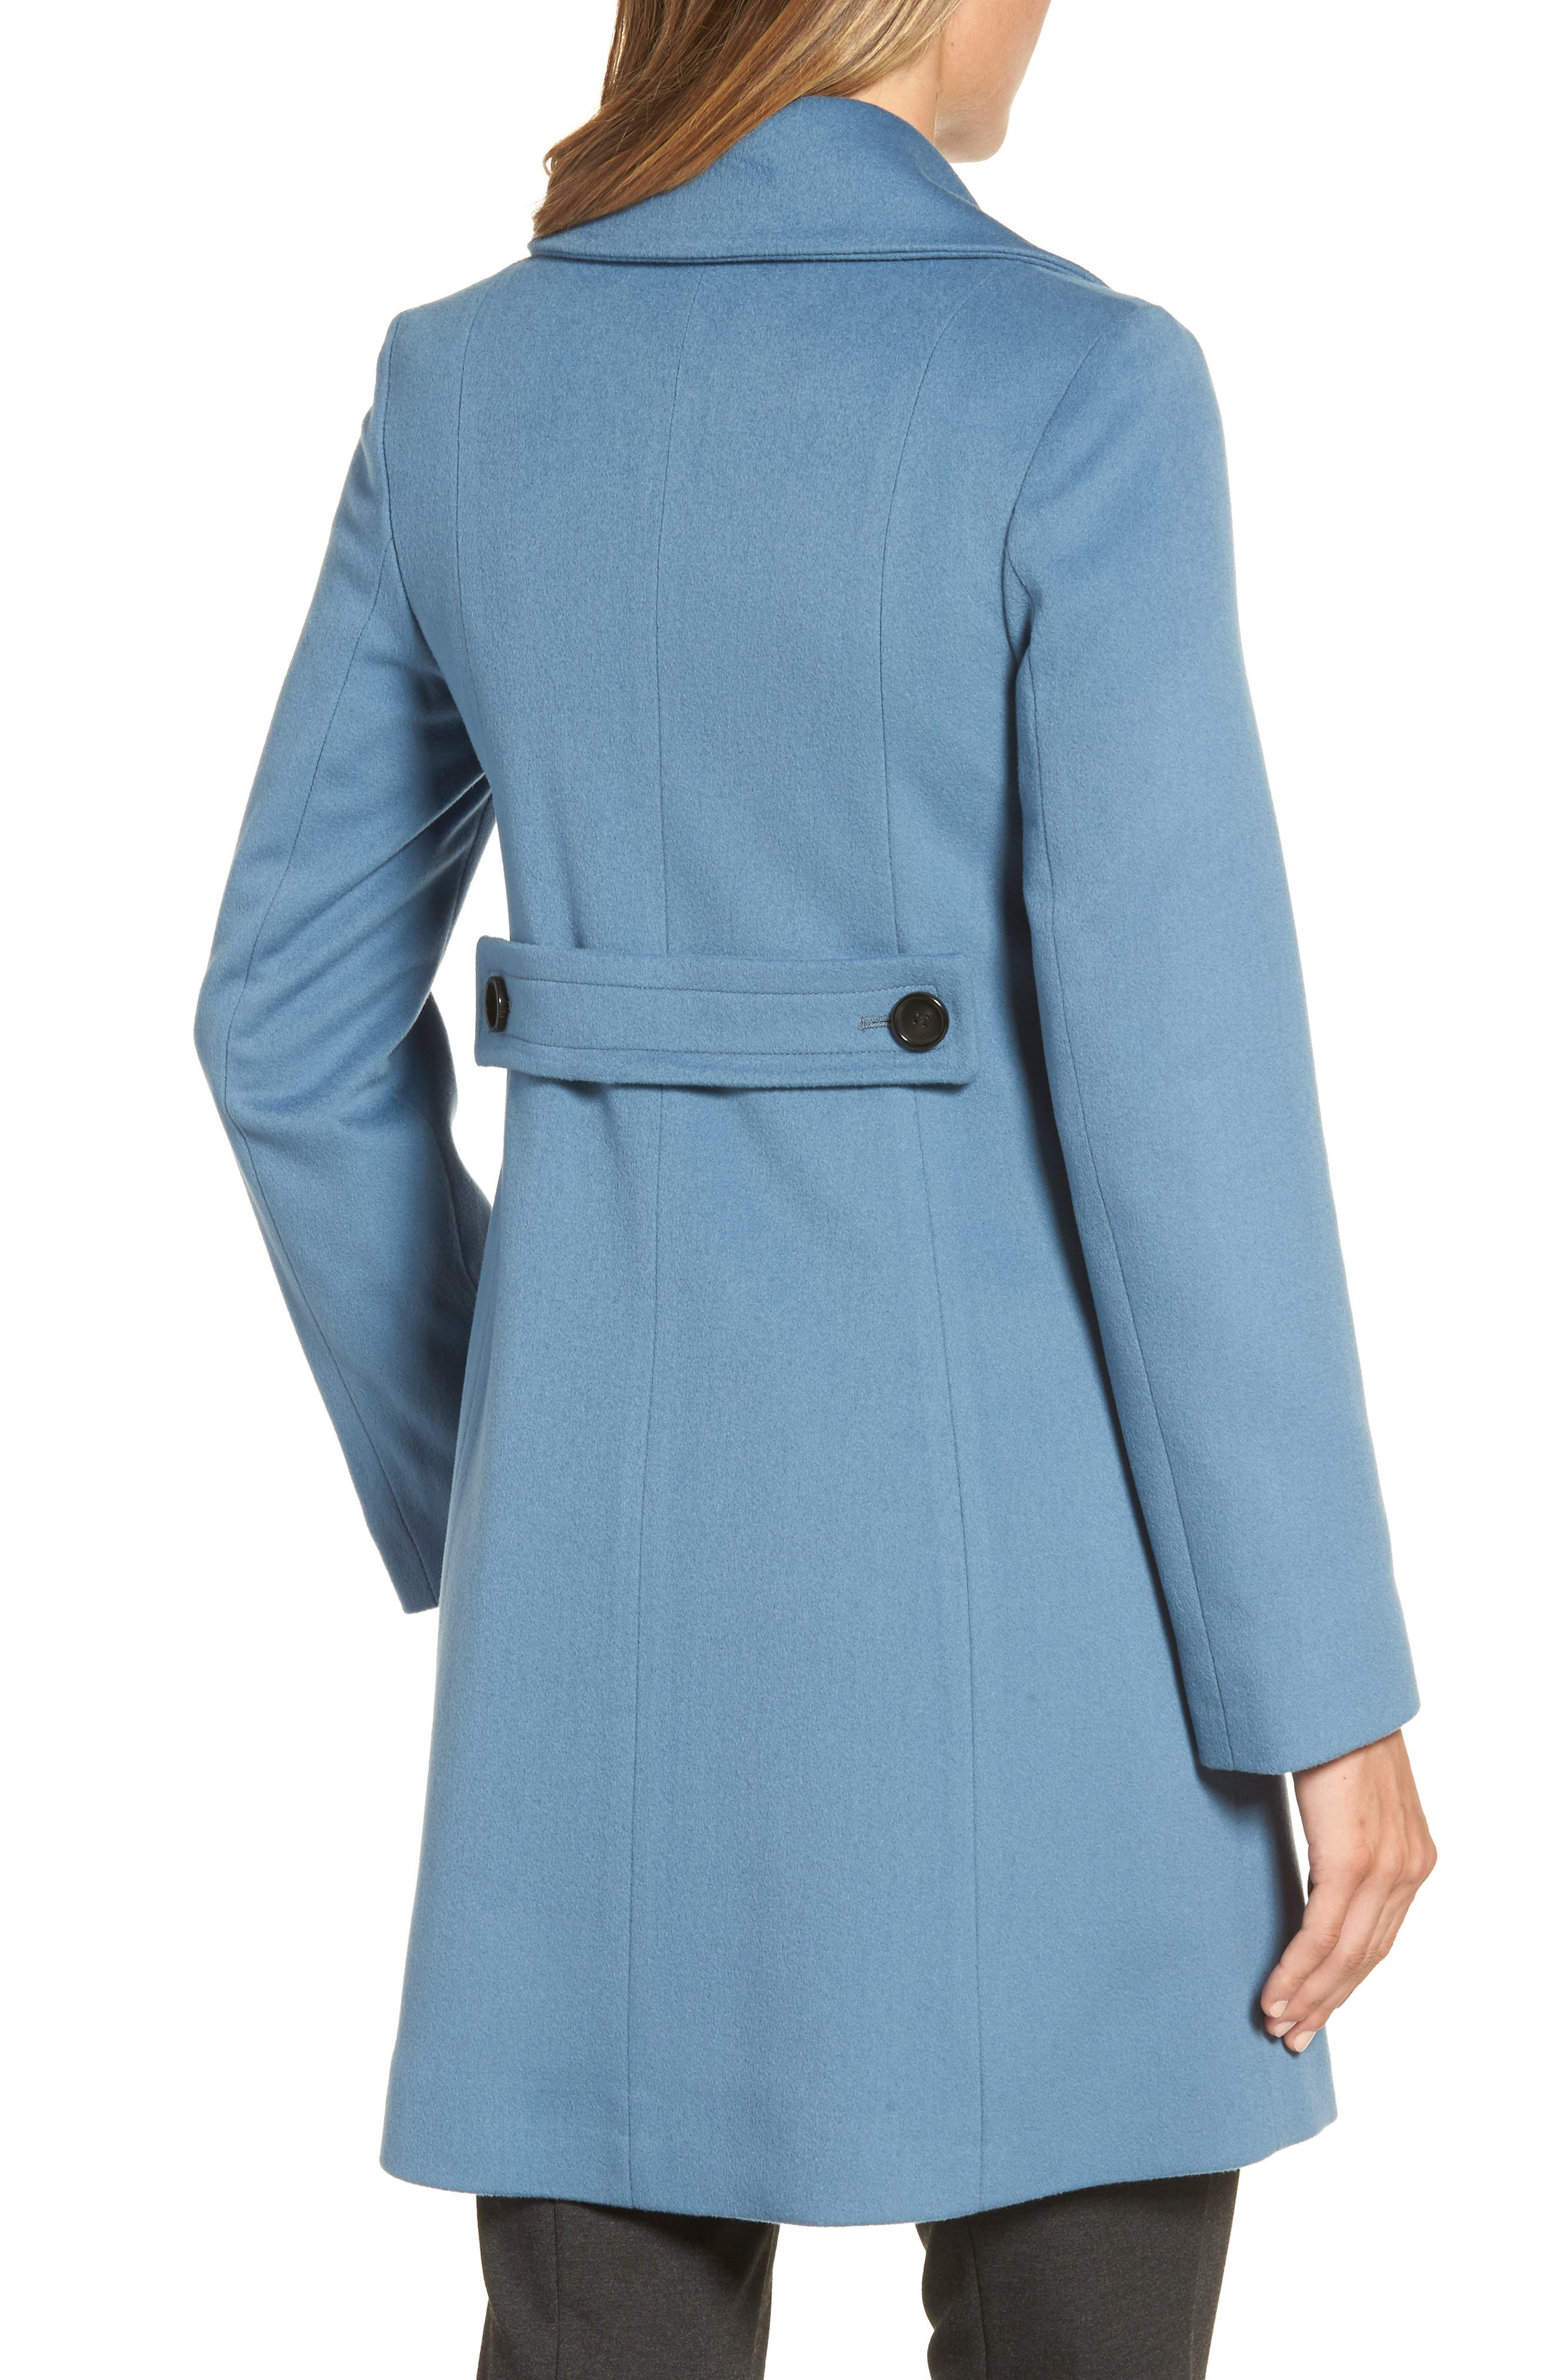 Double Breasted Loro Piana Wool Coat,                             Alternate thumbnail 2, color,                             Cornflower